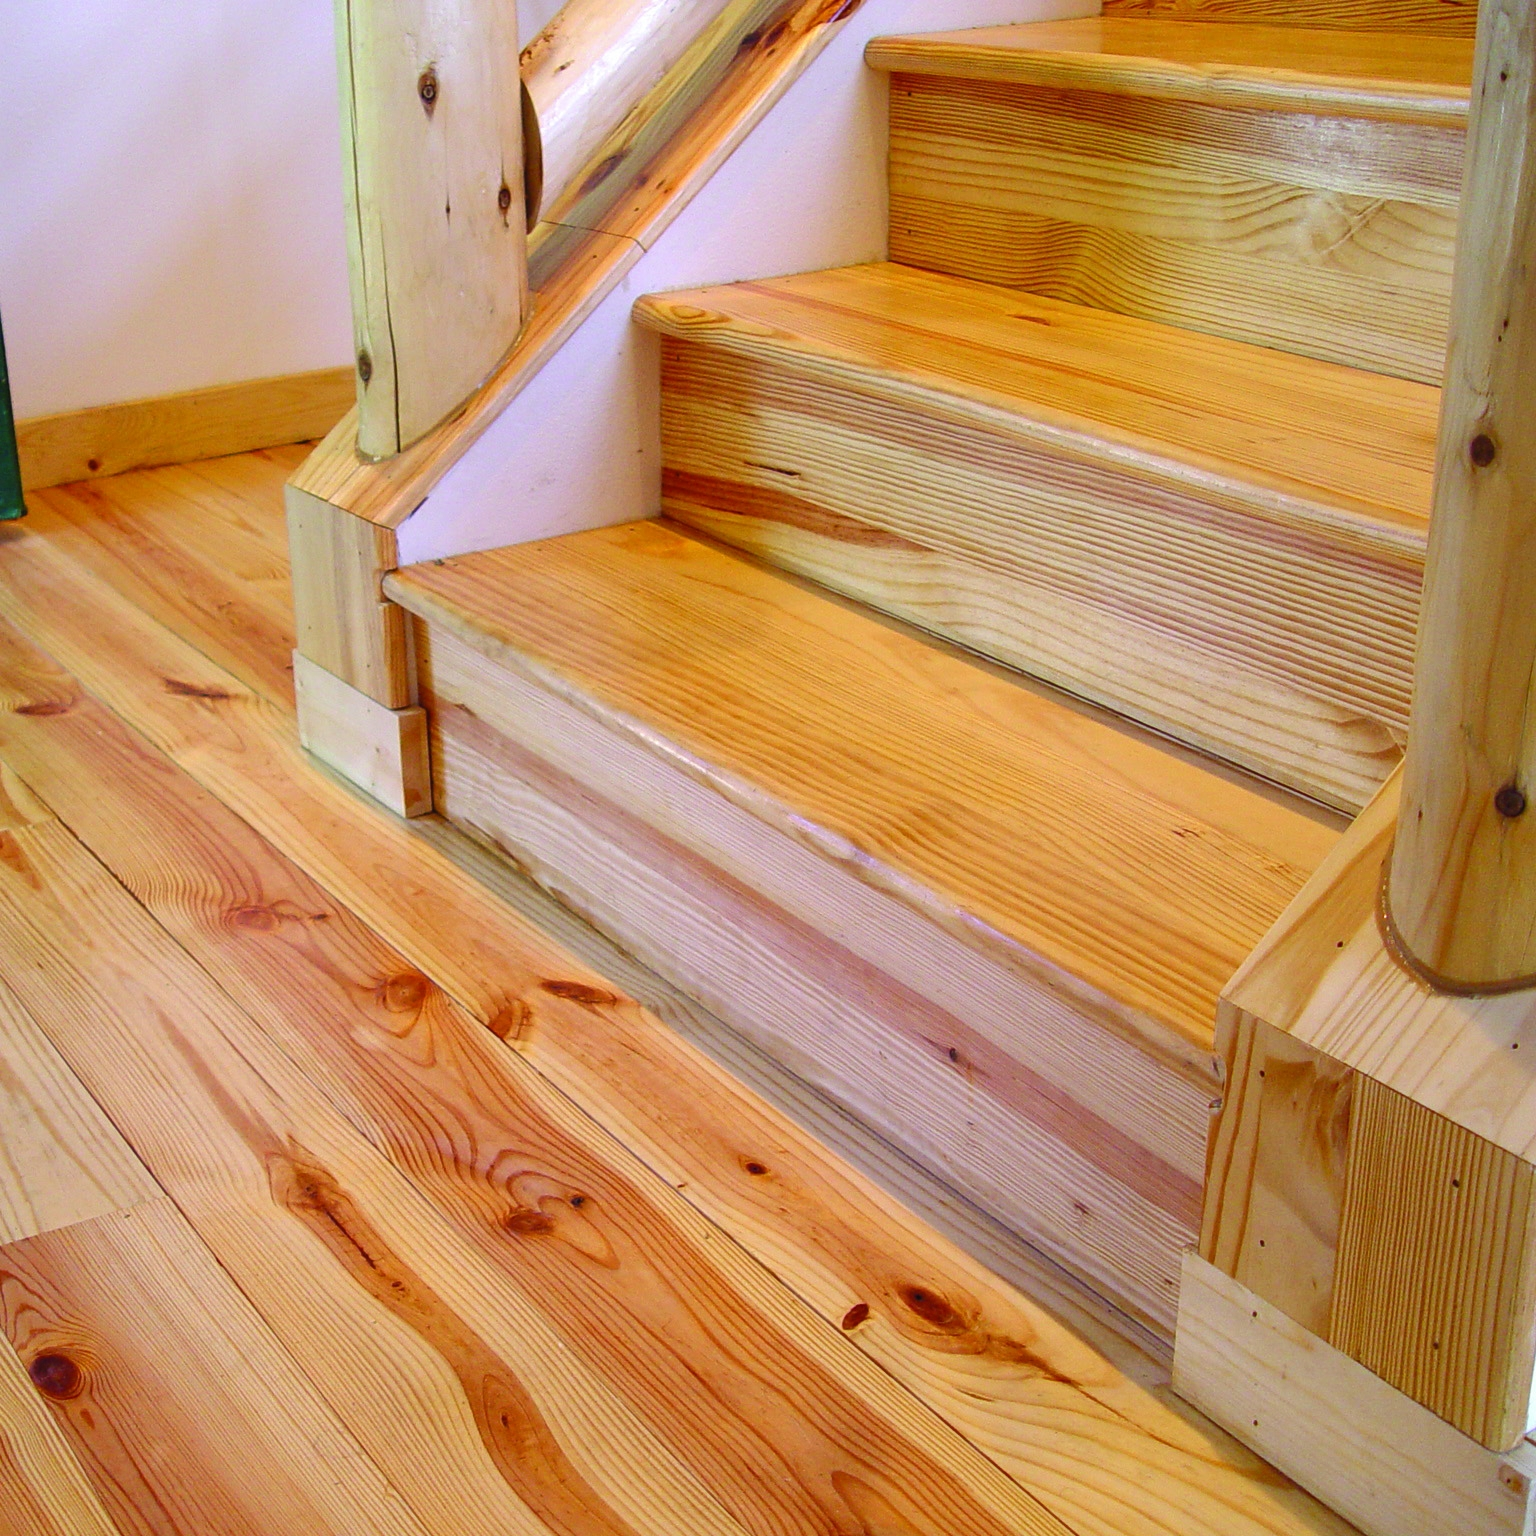 Southern Pine Stair Treads Wi Weekes Forest Products | Pine Wood Stair Treads | Stair Risers | Stair Nosing | Lumber | Unfinished Pine | Plywood